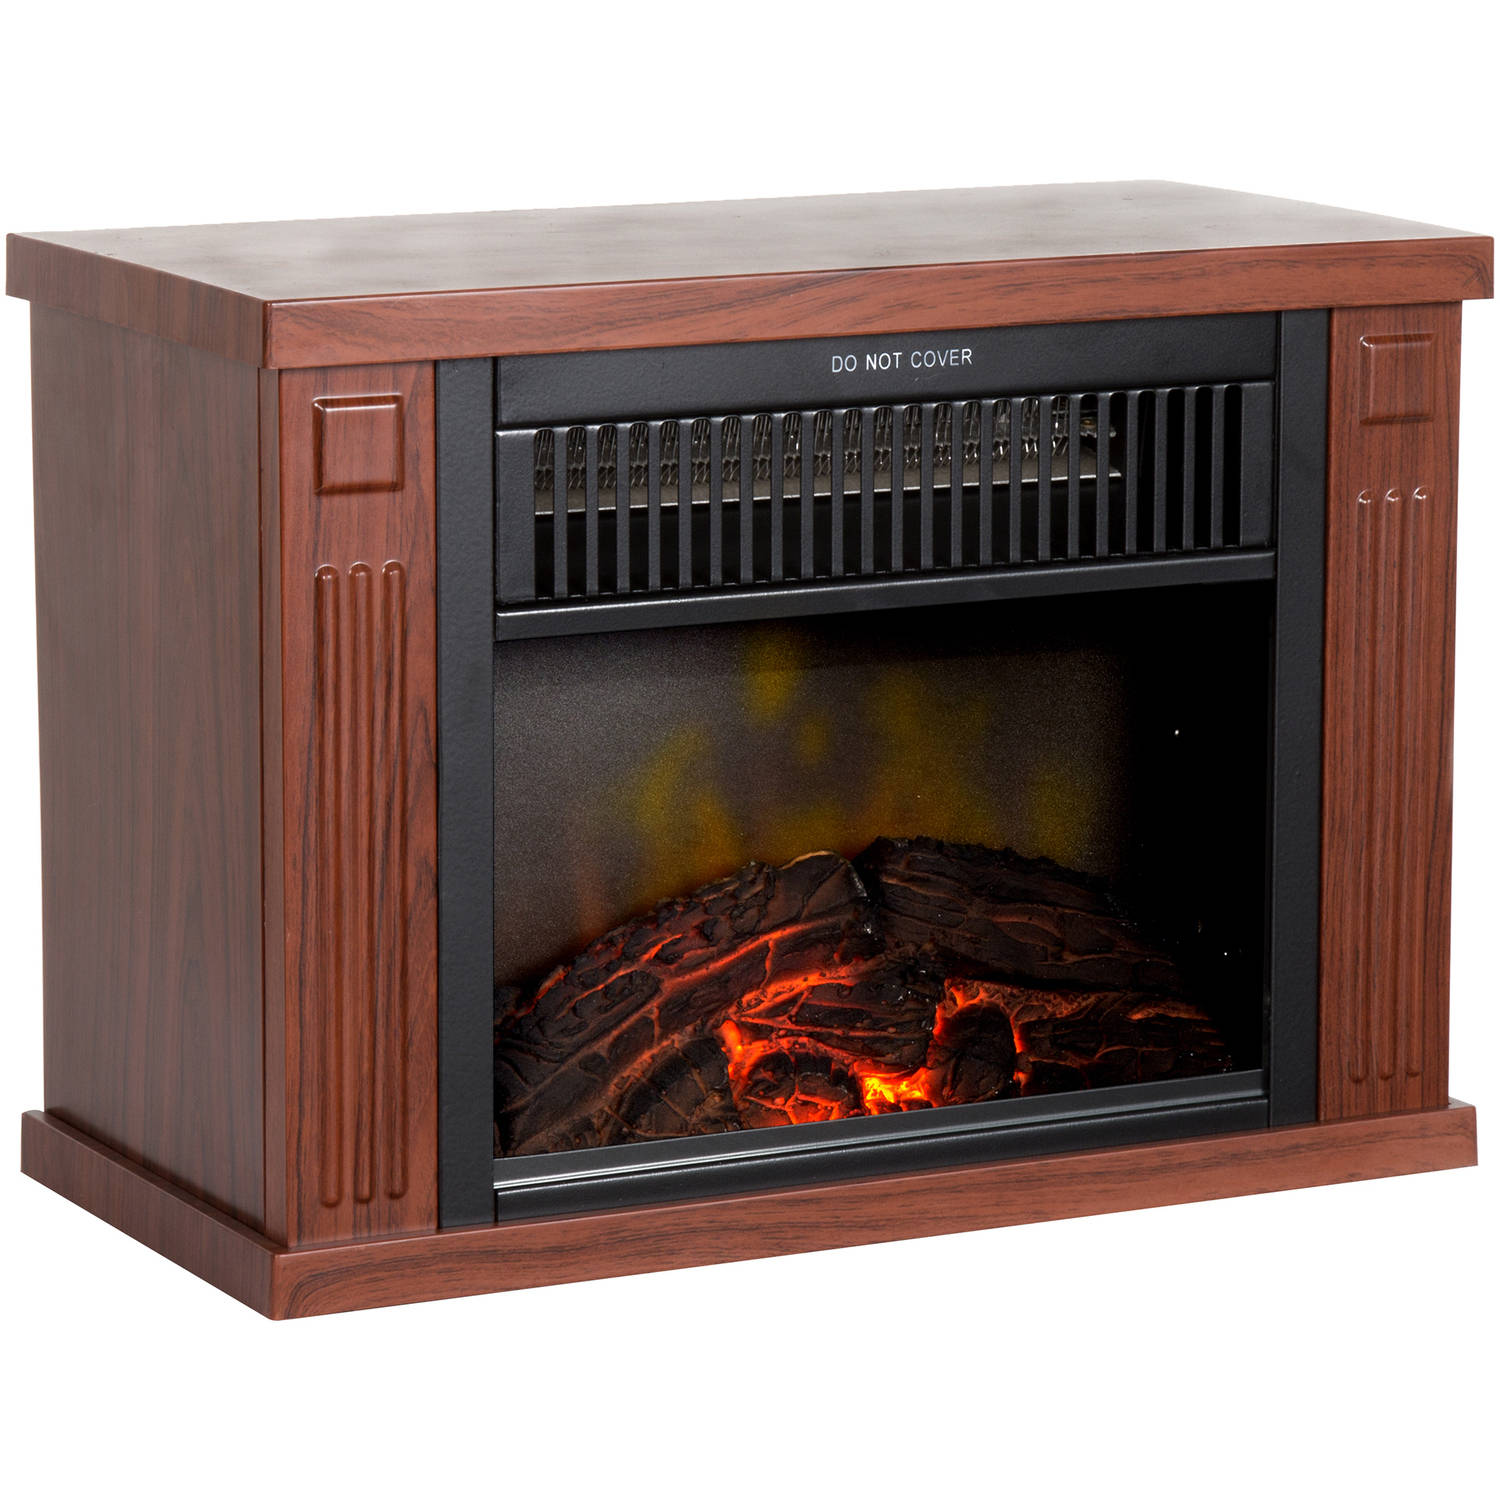 canada mini best cube buy product electric heater ca stove freestanding en space fireplace dimplex indoor gloss red fireplaces